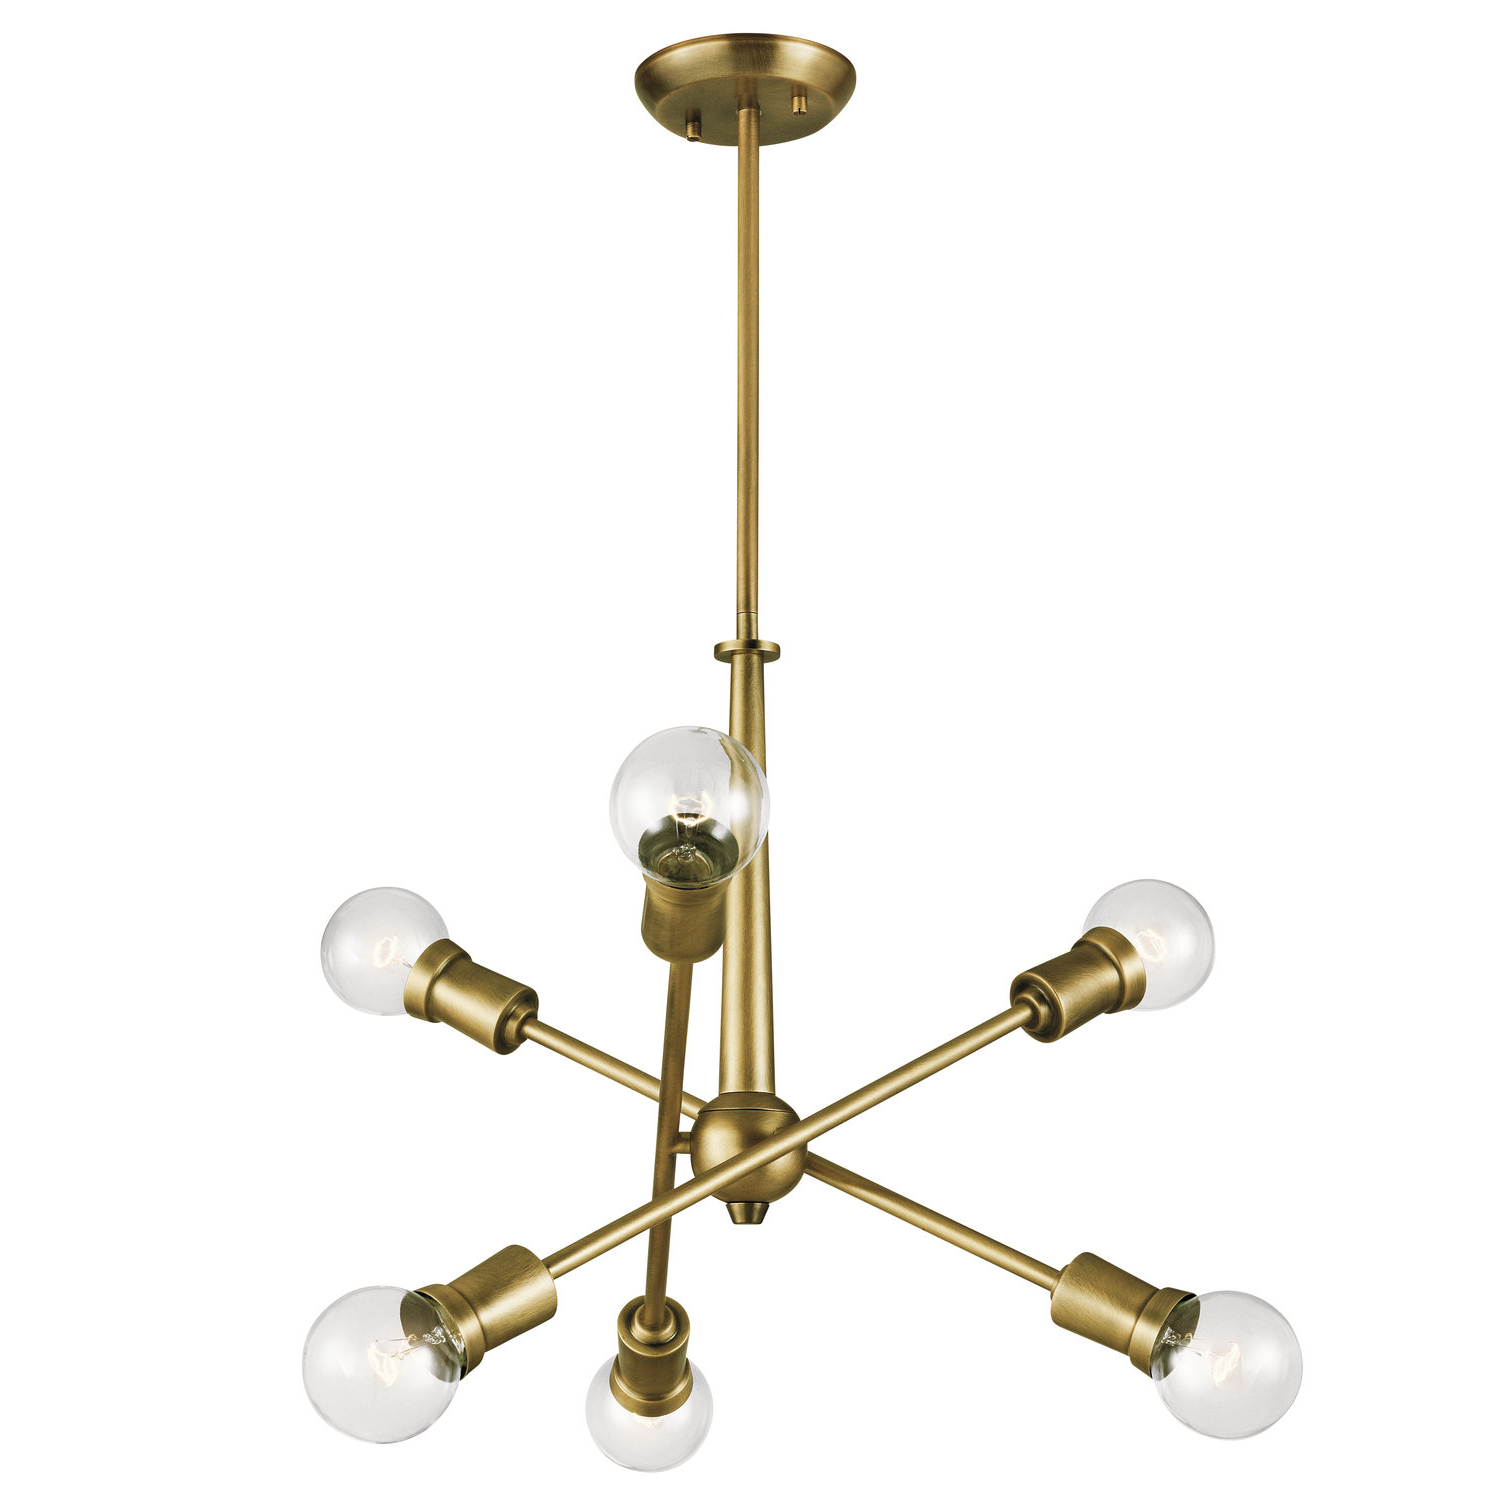 Eladia 6 Light Sputnik Chandeliers Throughout Most Current Tatum 6 Light Chandelier (View 9 of 20)